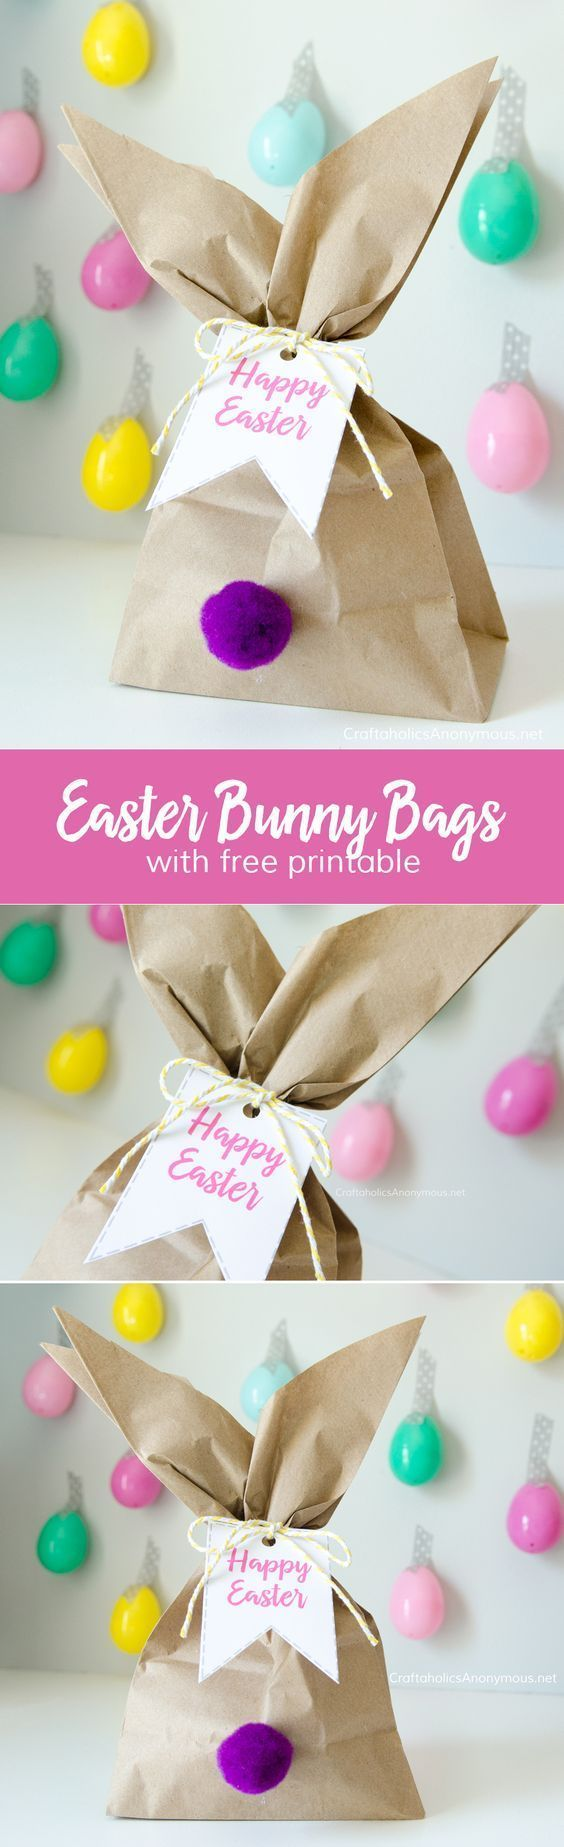 Easy easter bunny gift bags idea make great favors gifts easy easter bunny gift bags idea make great favors gifts decor negle